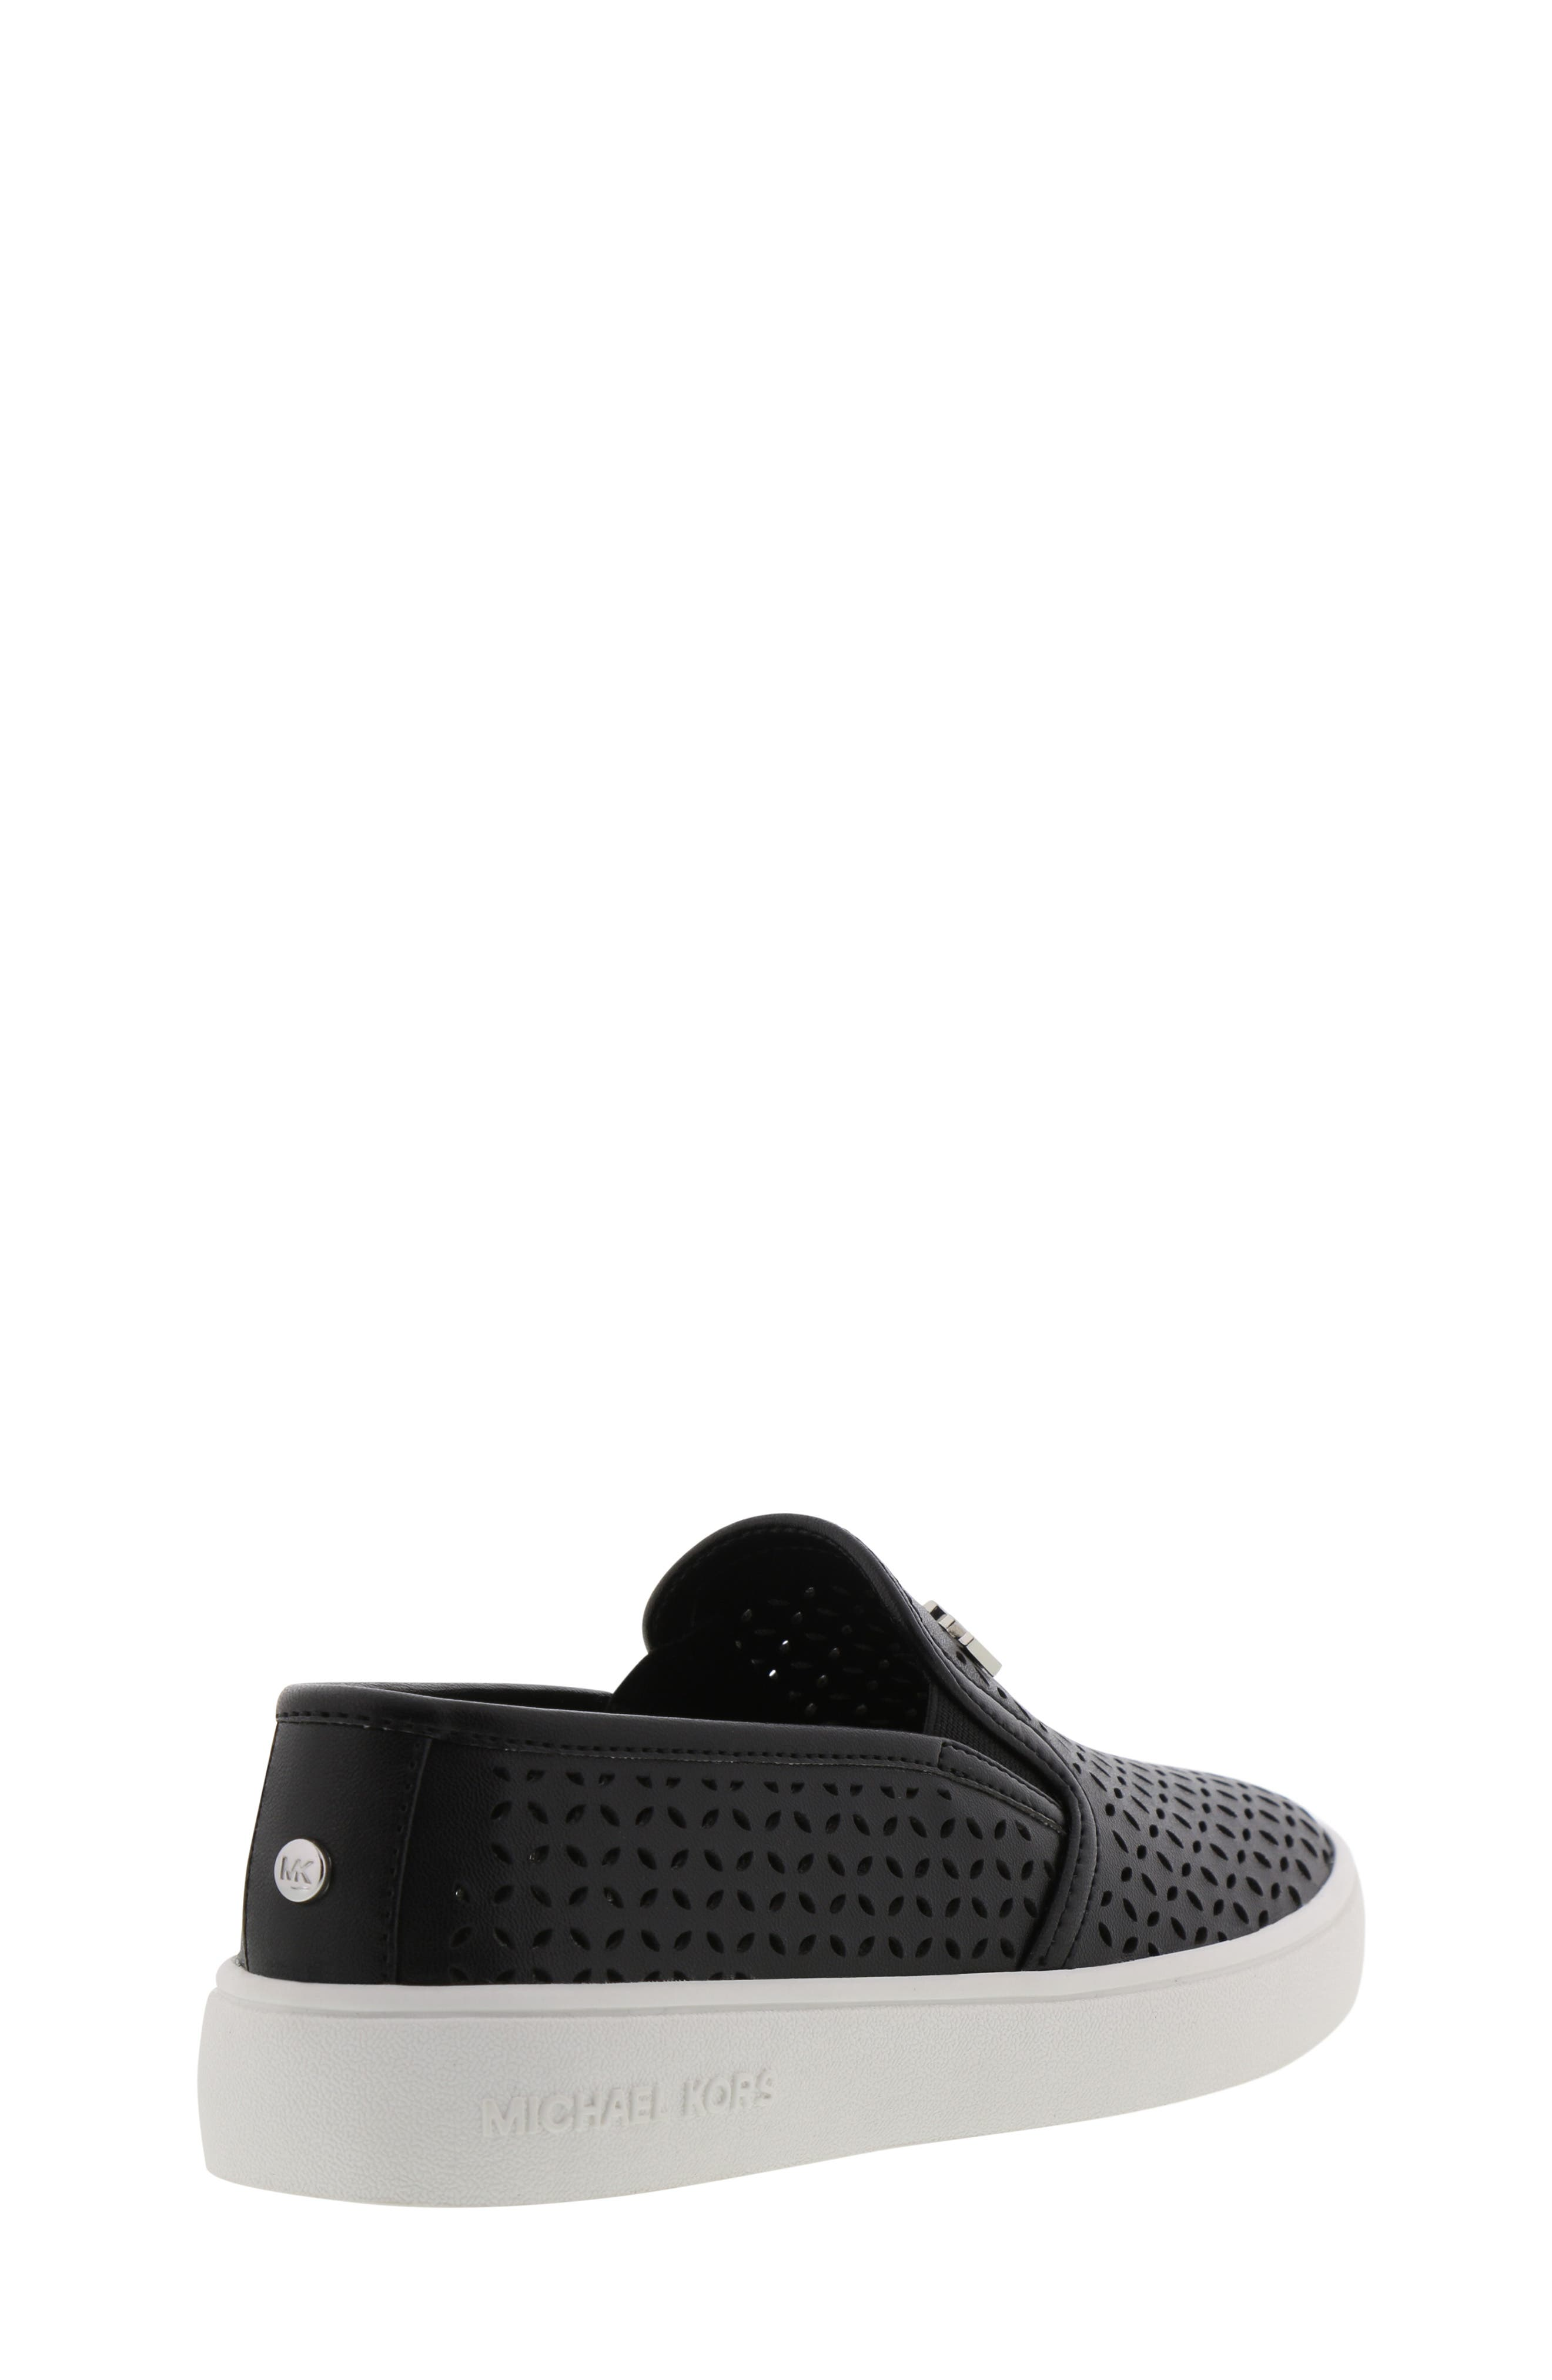 MICHAEL MICHAEL KORS, Jem Olivia Perforated Slip-On Sneaker, Alternate thumbnail 2, color, BLACK